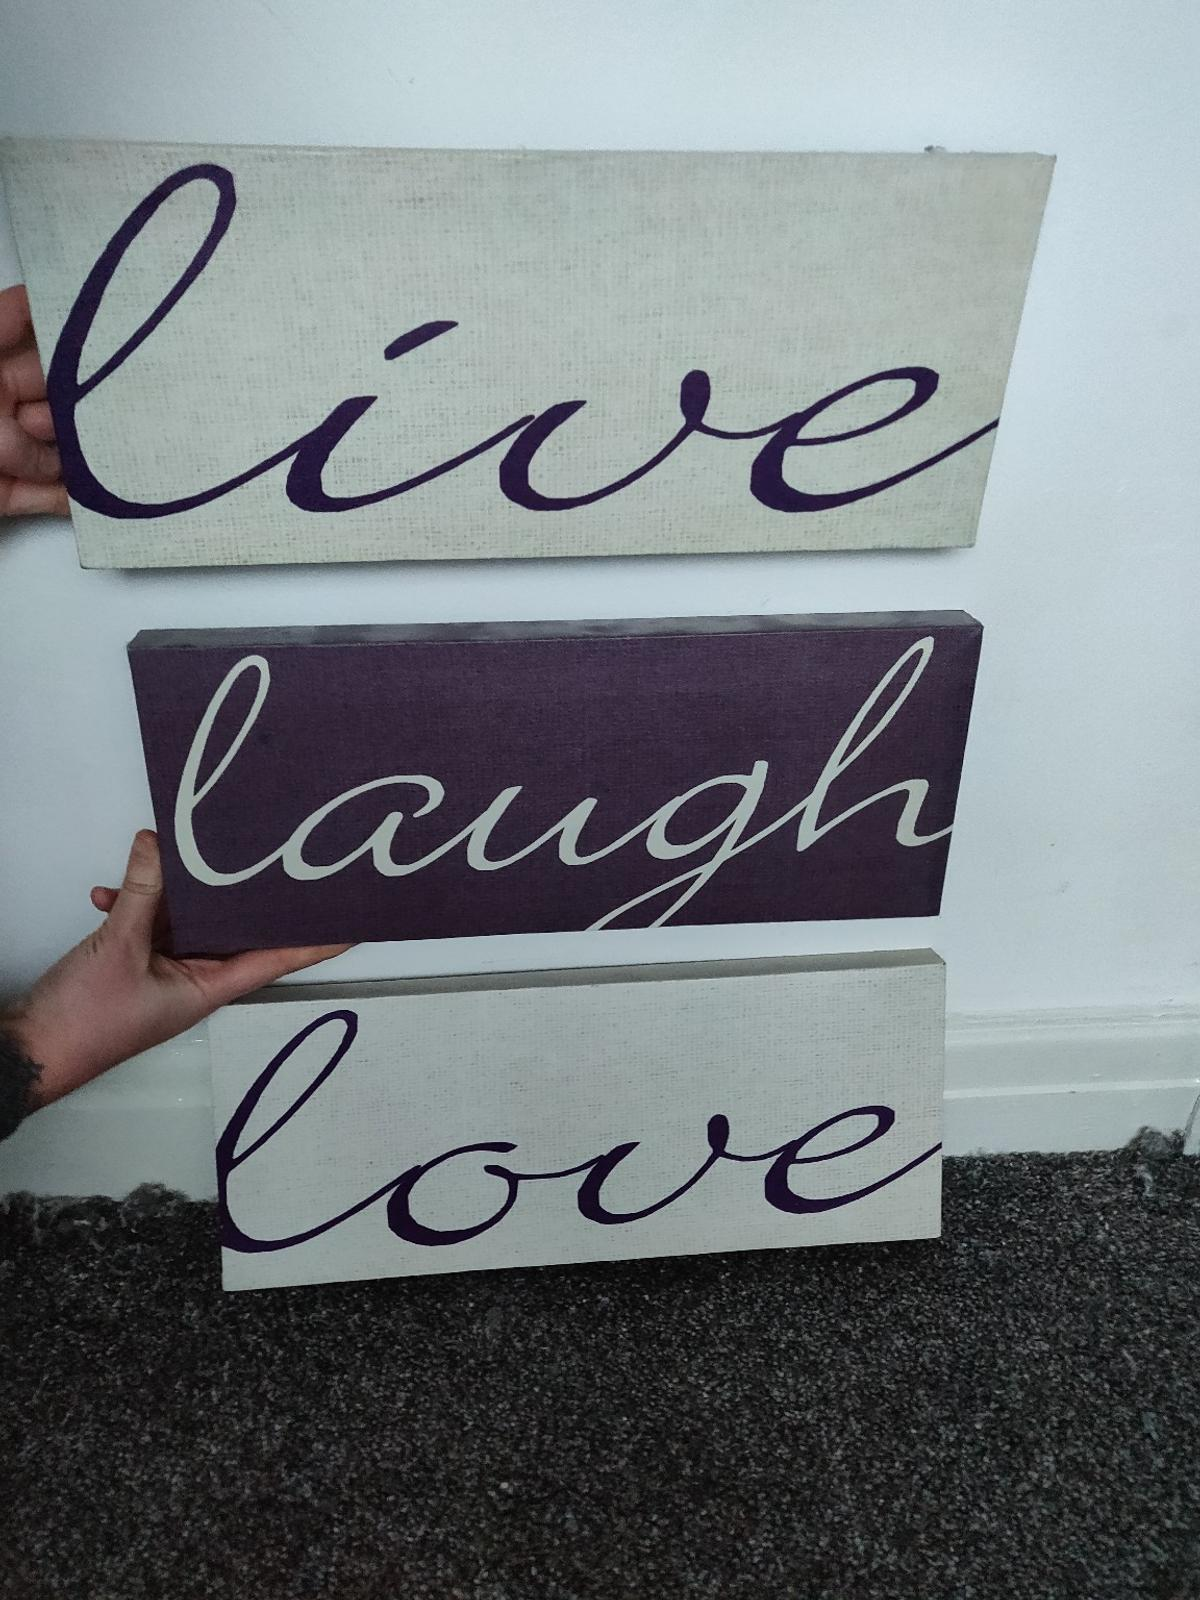 Live Love Laugh Canvas Signs In Sk5 Stockport For 5 00 For Sale Shpock,Baby Shower Decorations For Girl Elephant Theme